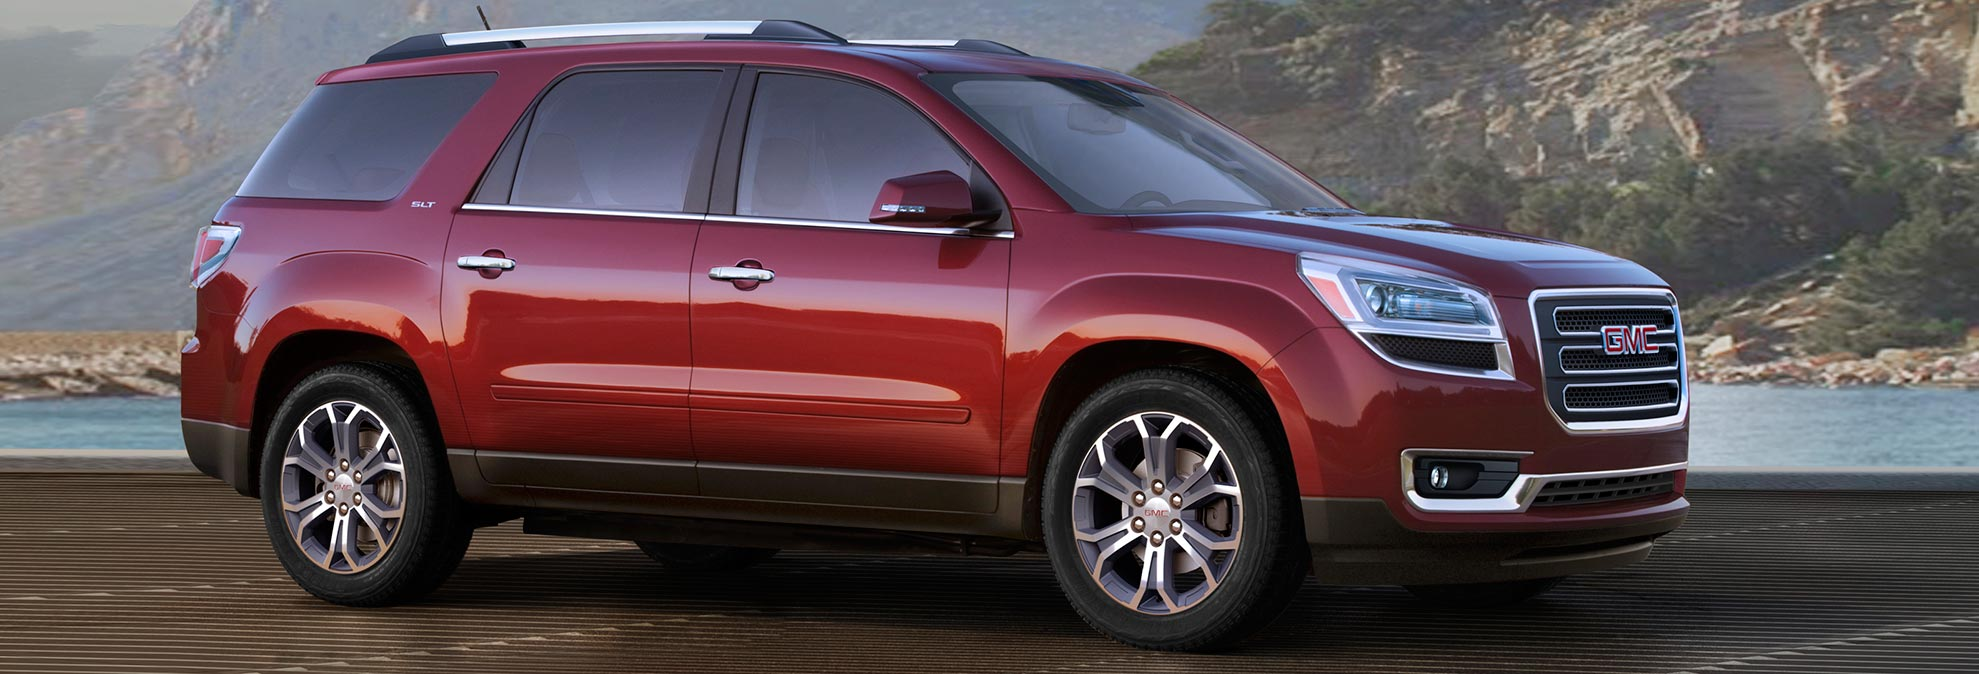 Gmc acadia product reviews and ratings consumer reports General motors complaints